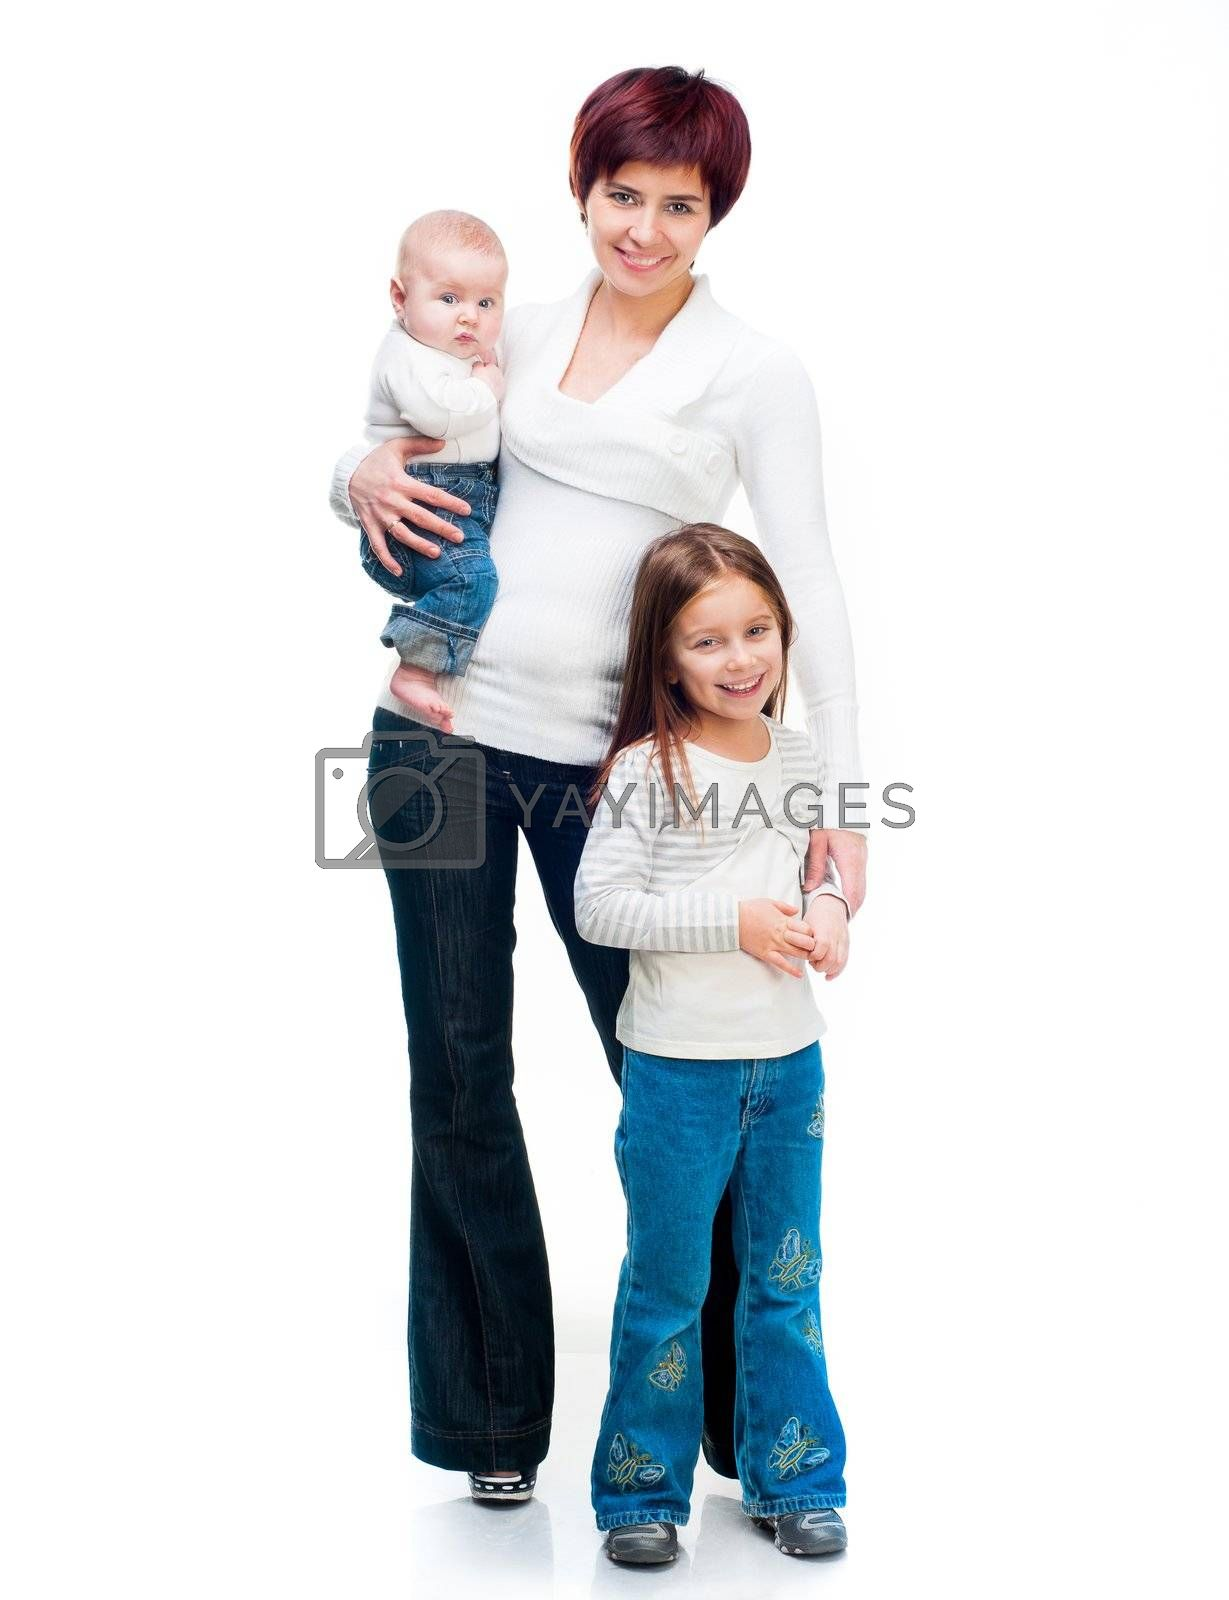 Royalty free image of Mother with babies by GekaSkr